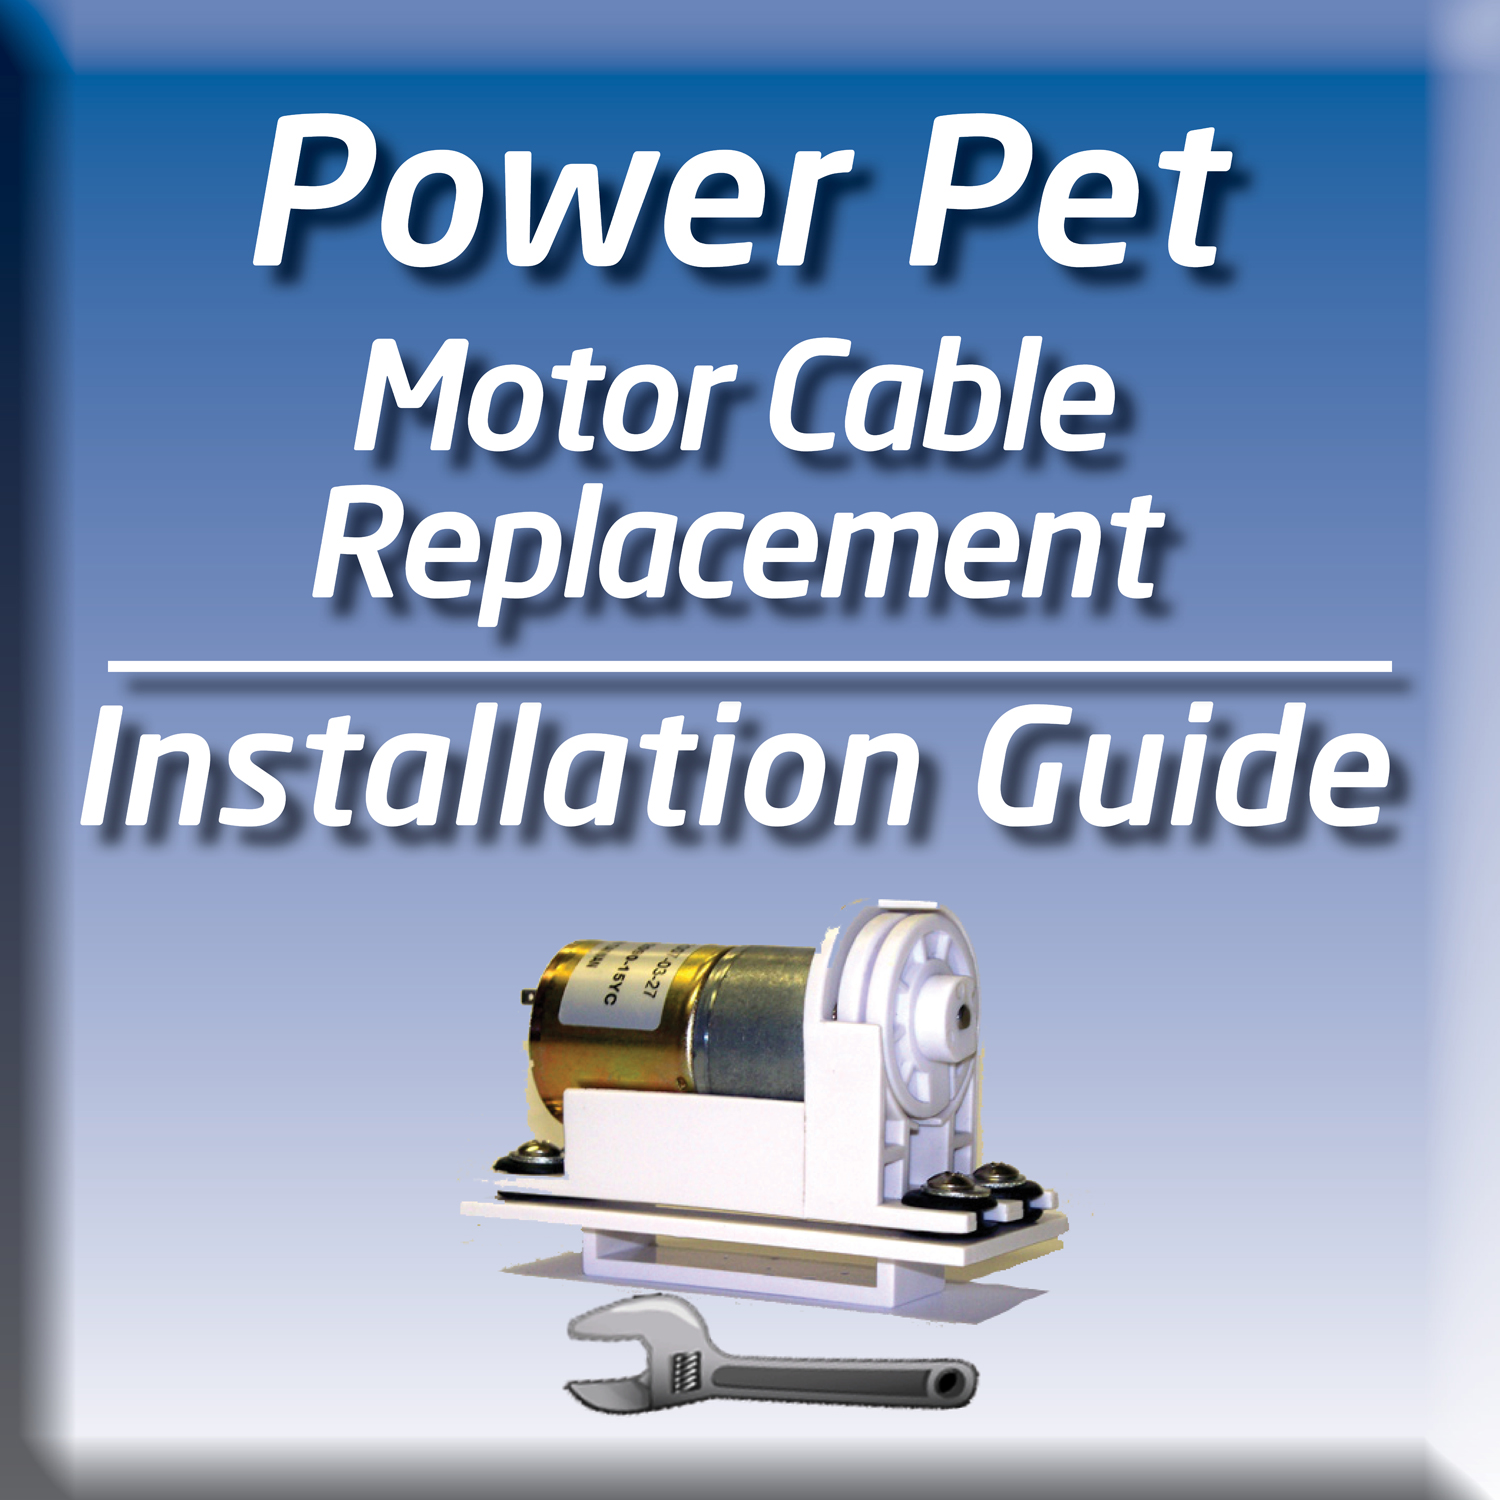 Replace your motor cable with ease